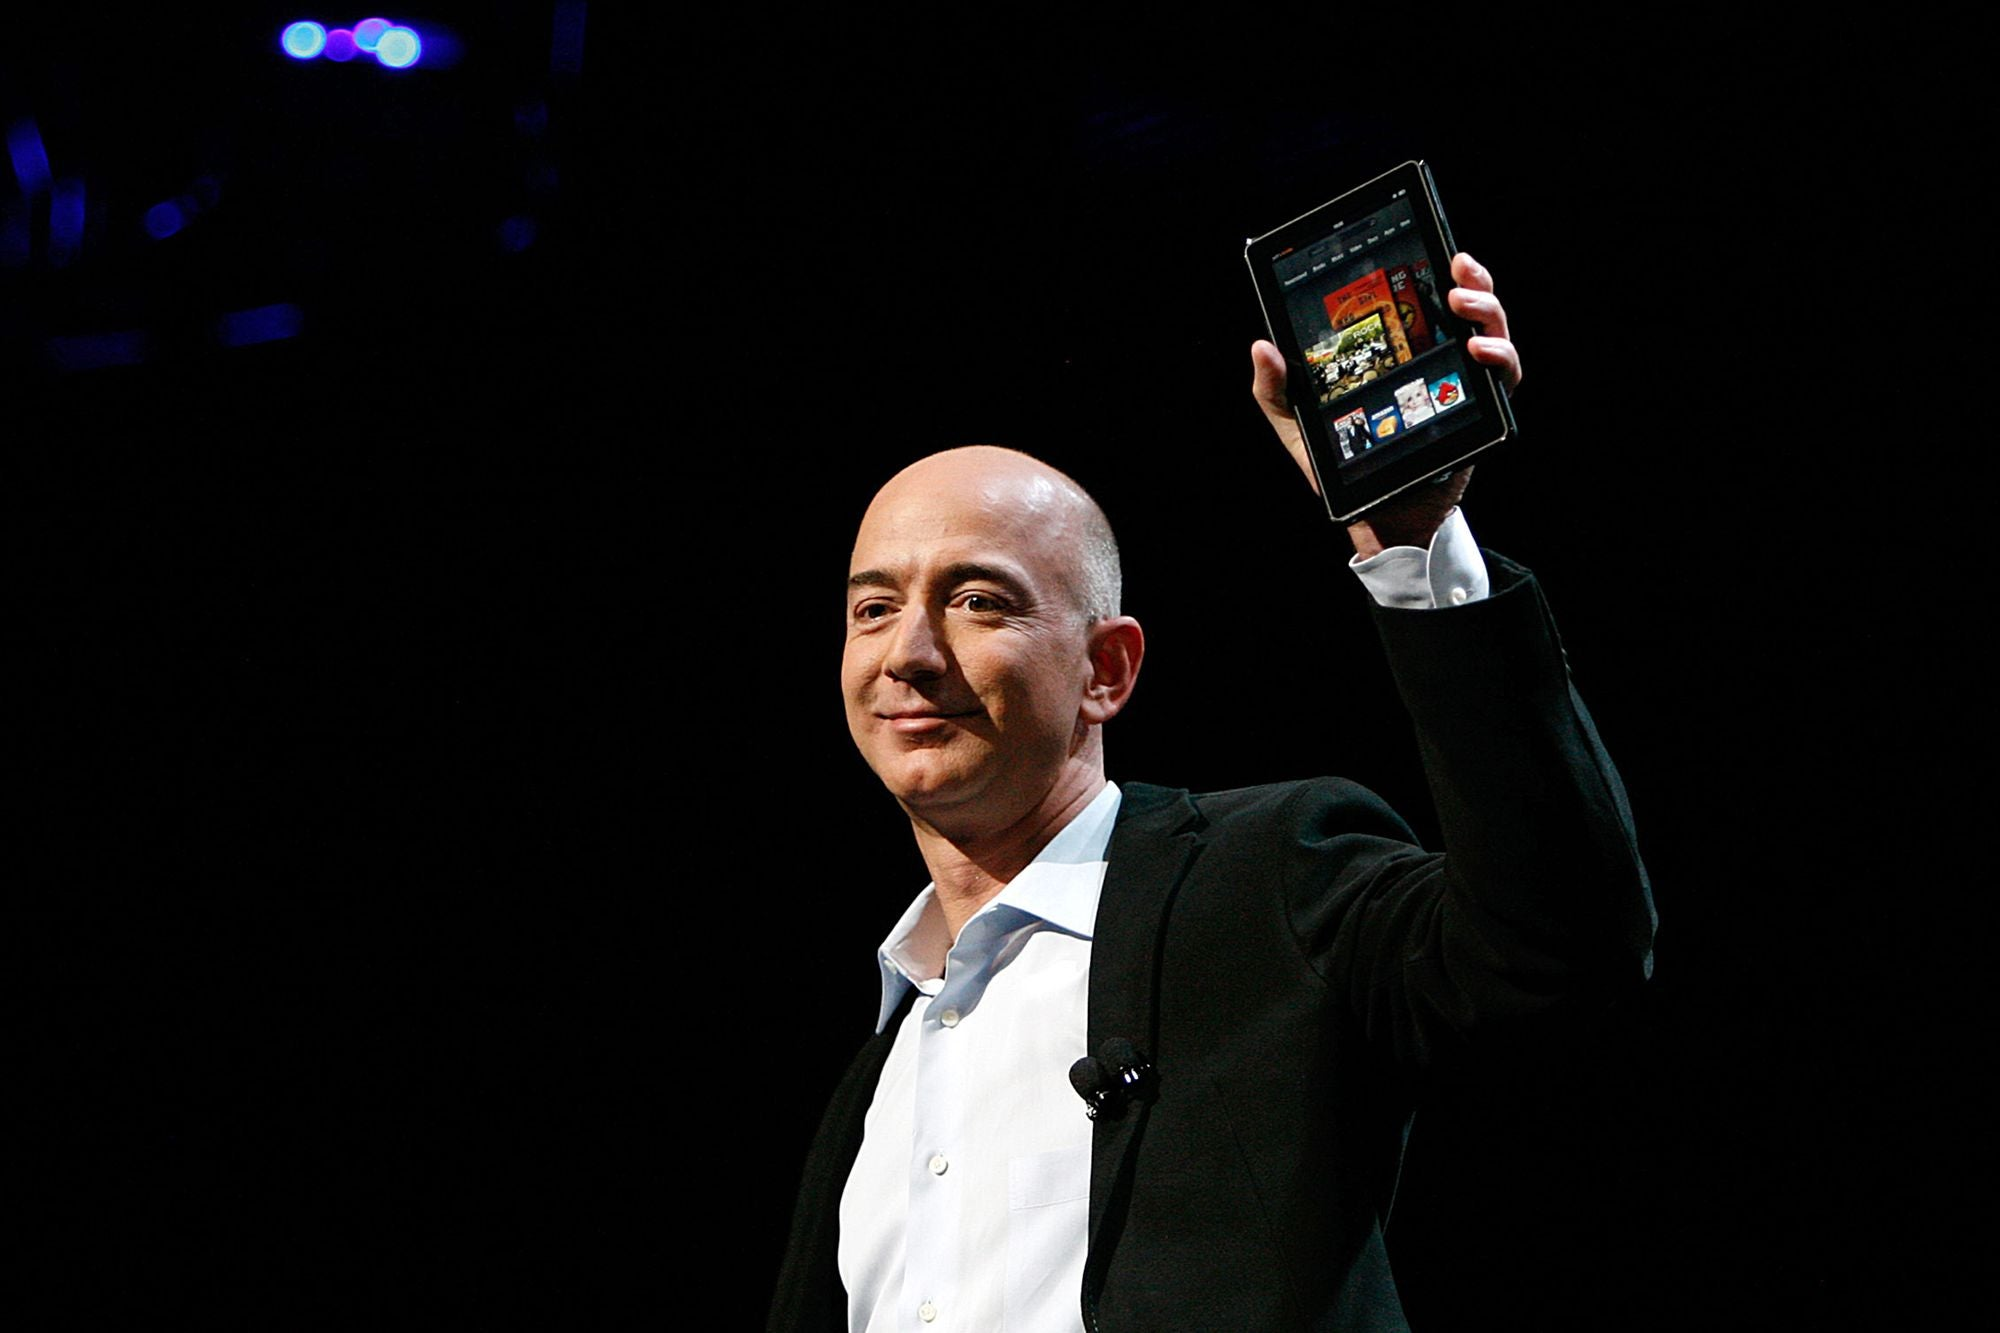 One Share of Amazon Stock Costs Over $1,600. Is It Worth It?